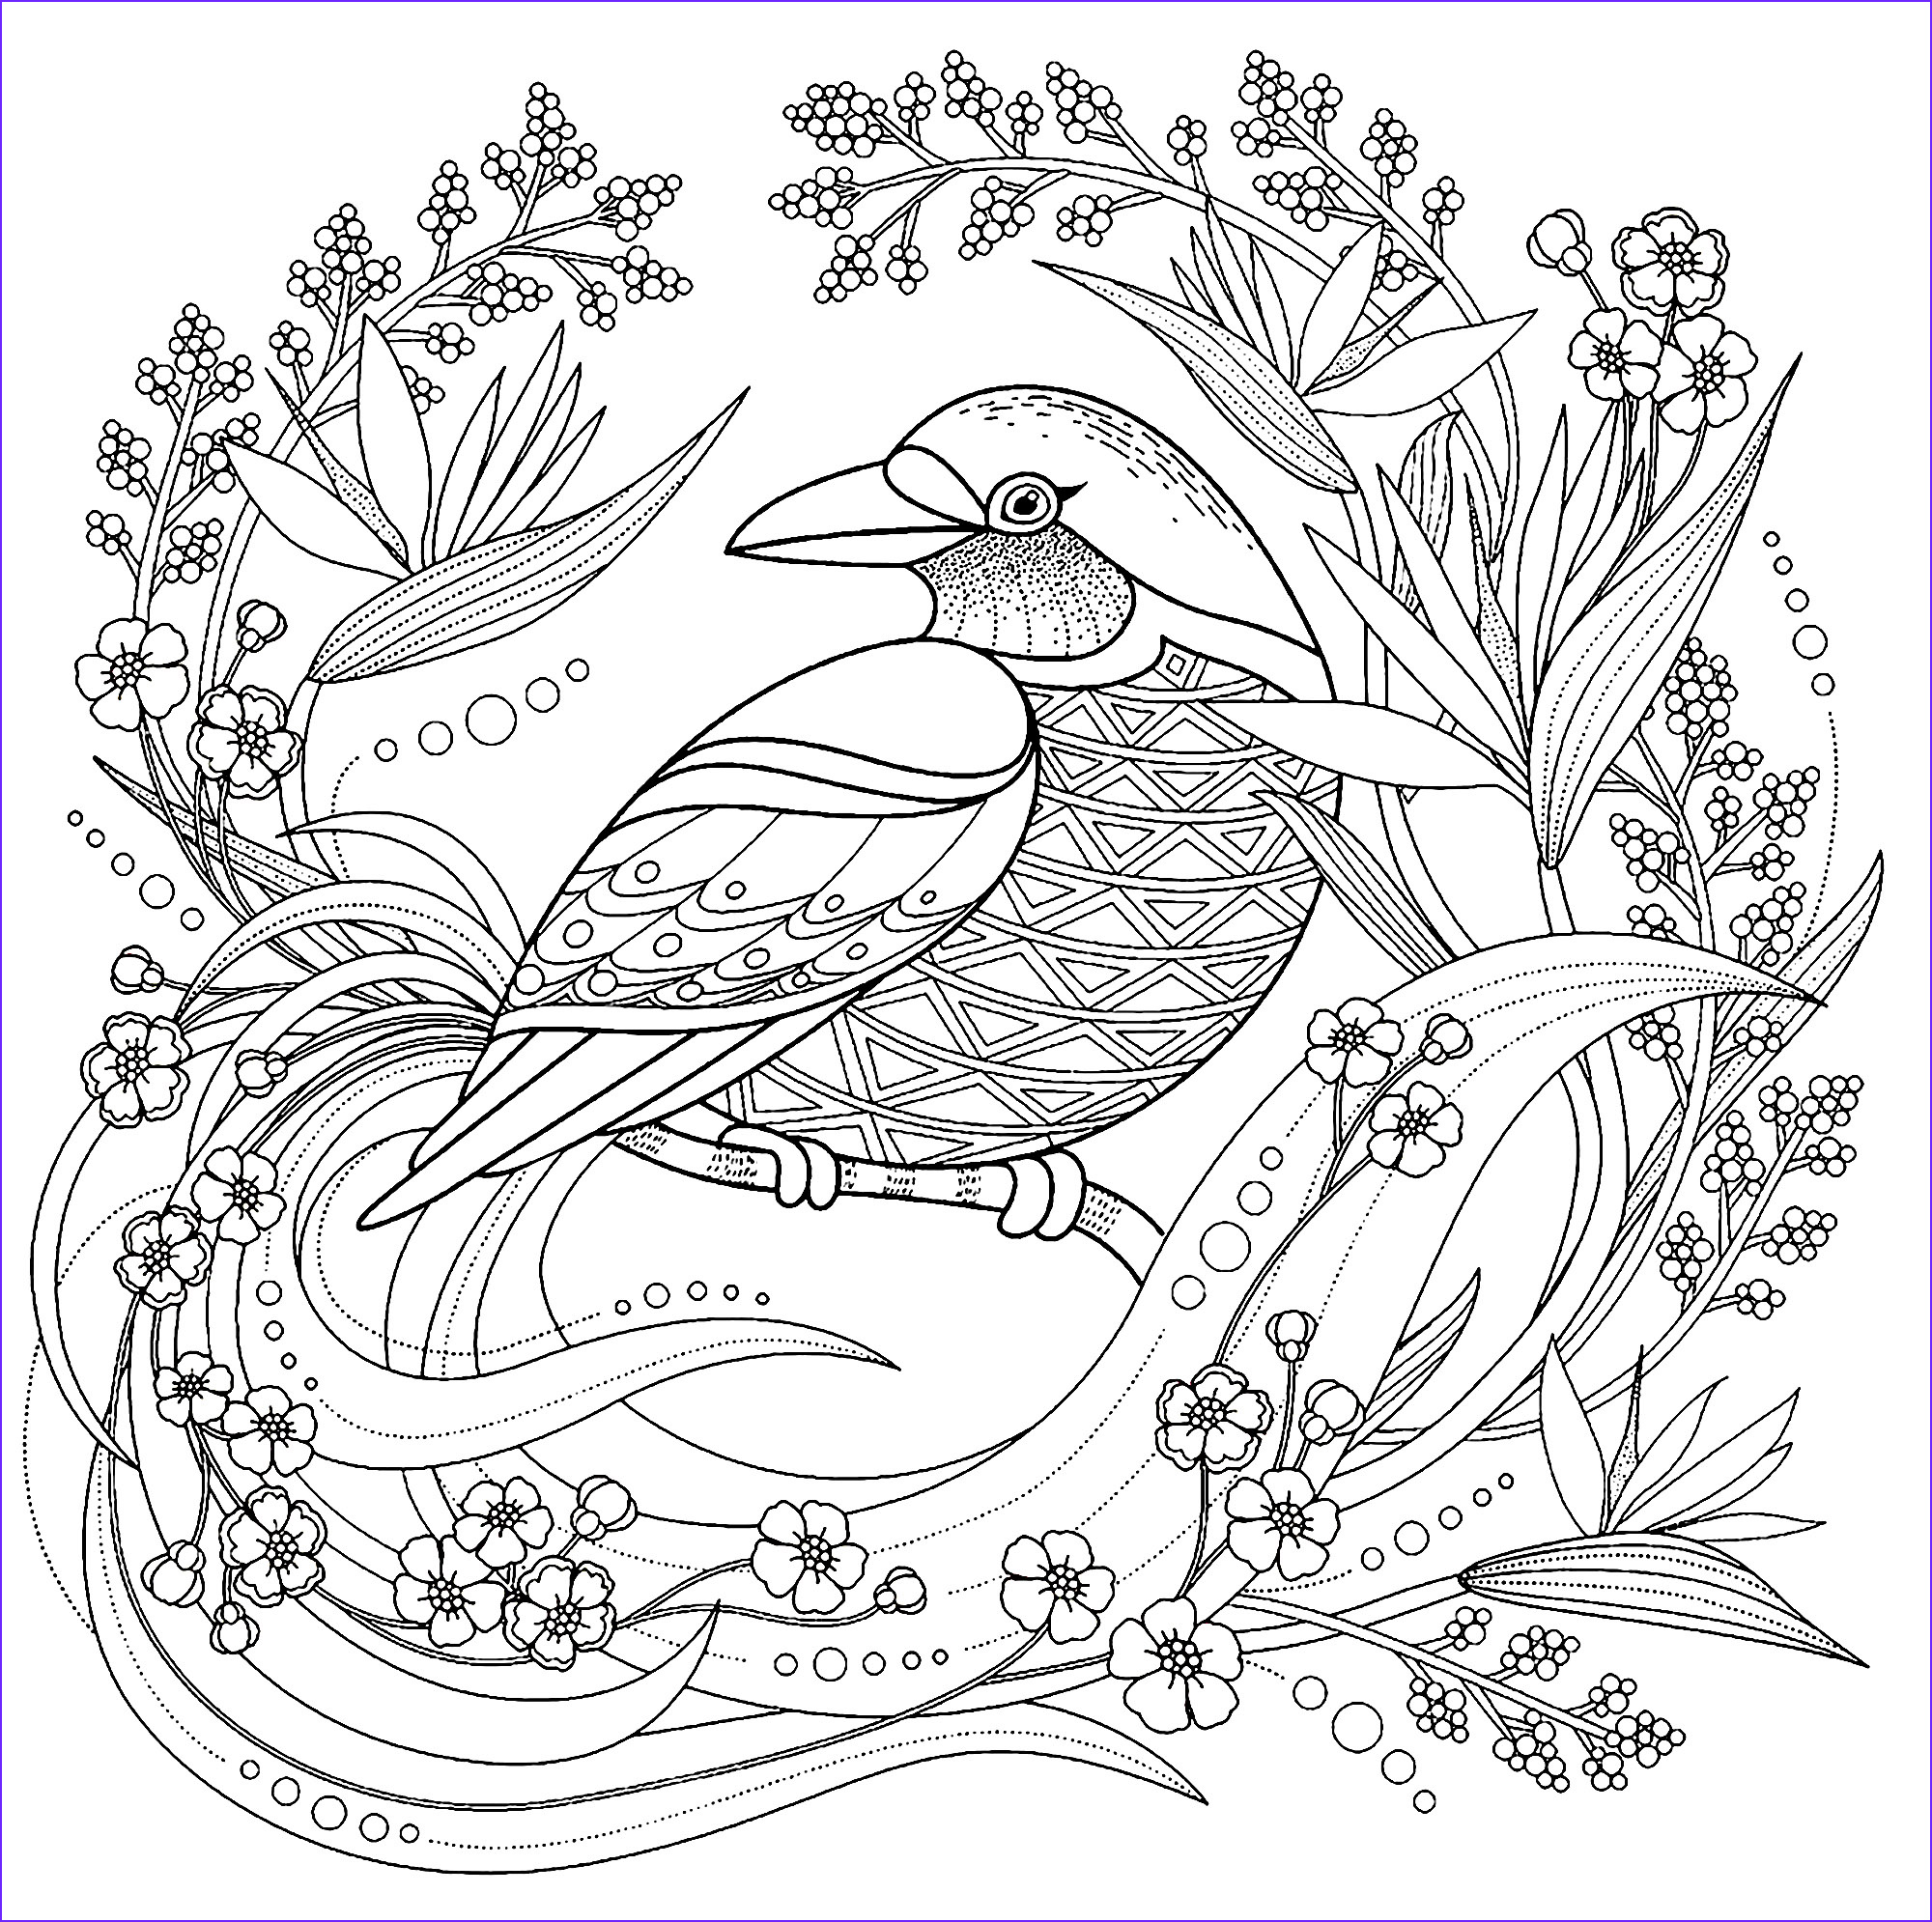 image=birds Coloring pages for children JustColor kids birds 1